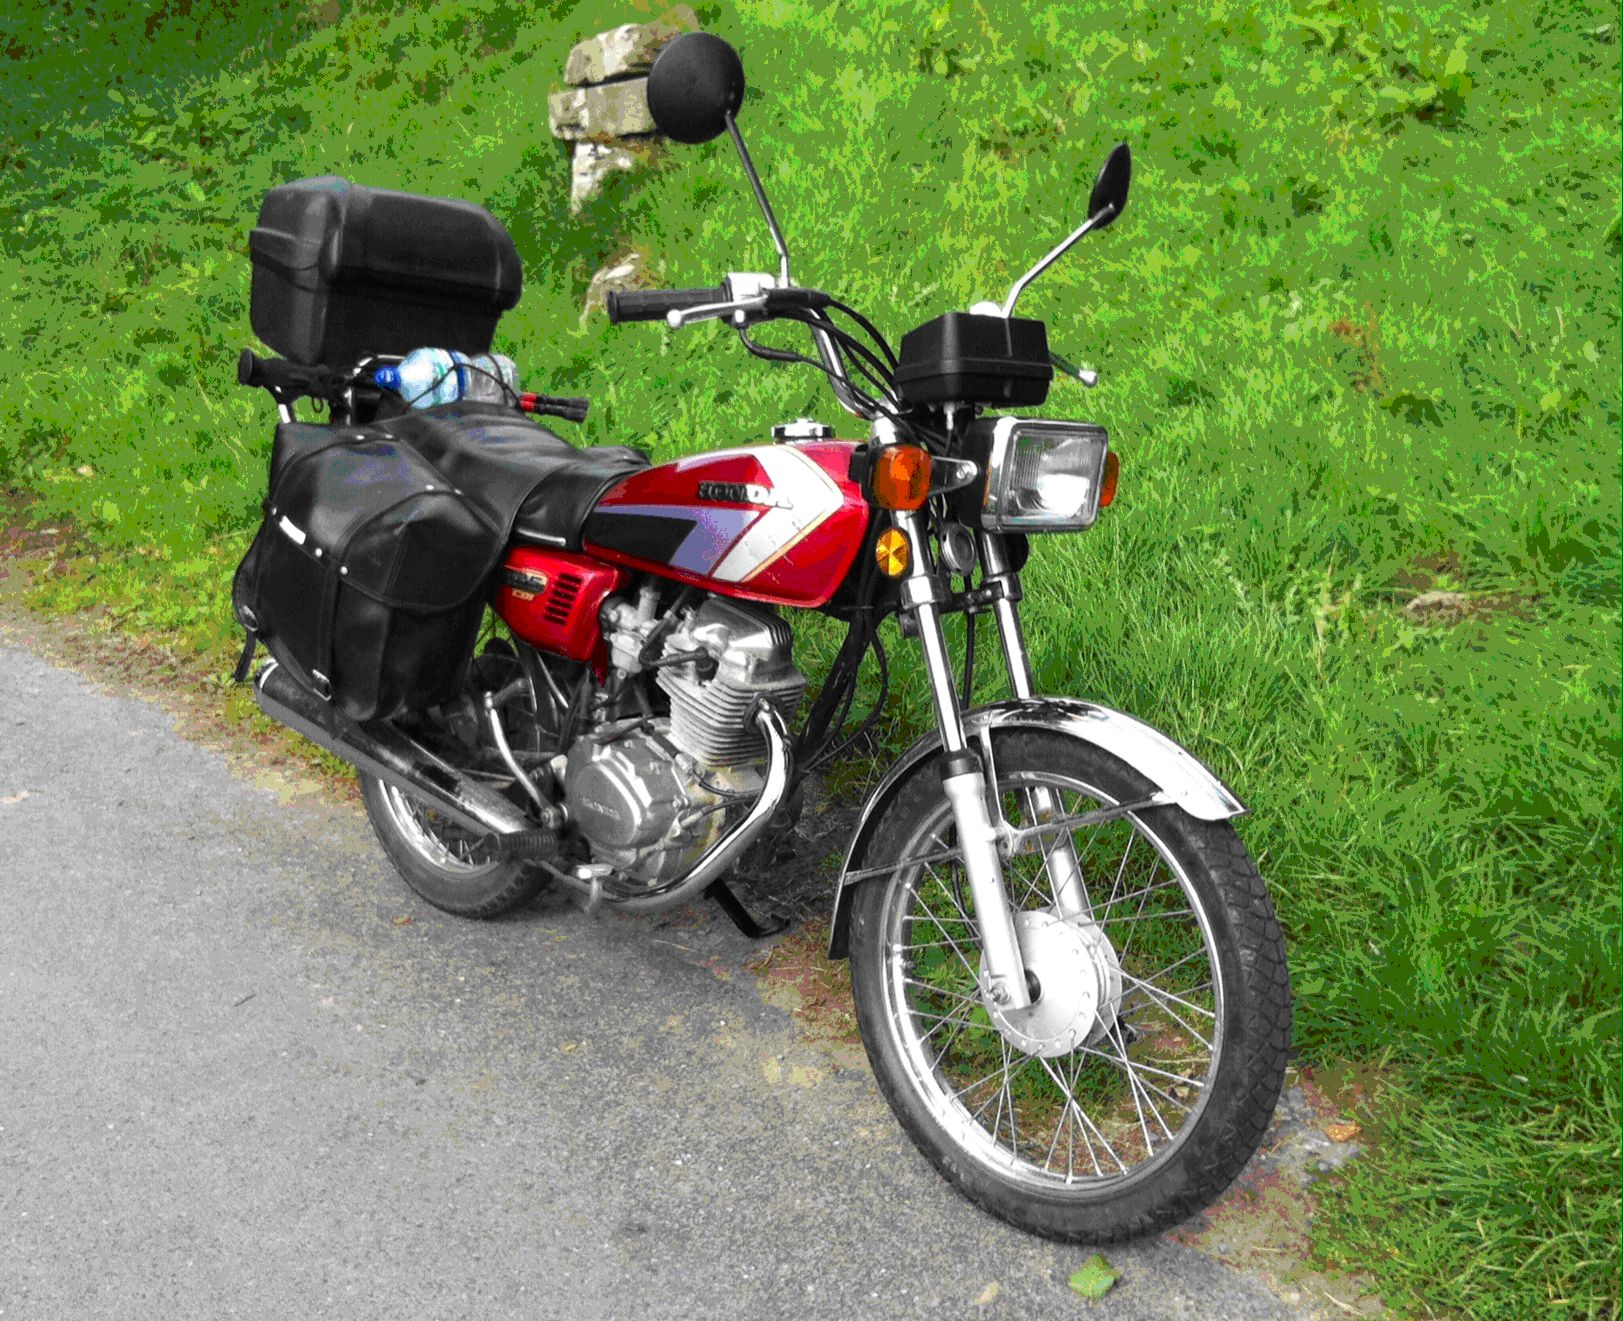 A classic Honda CG 125 in red complete with top box and saddle bags for touring